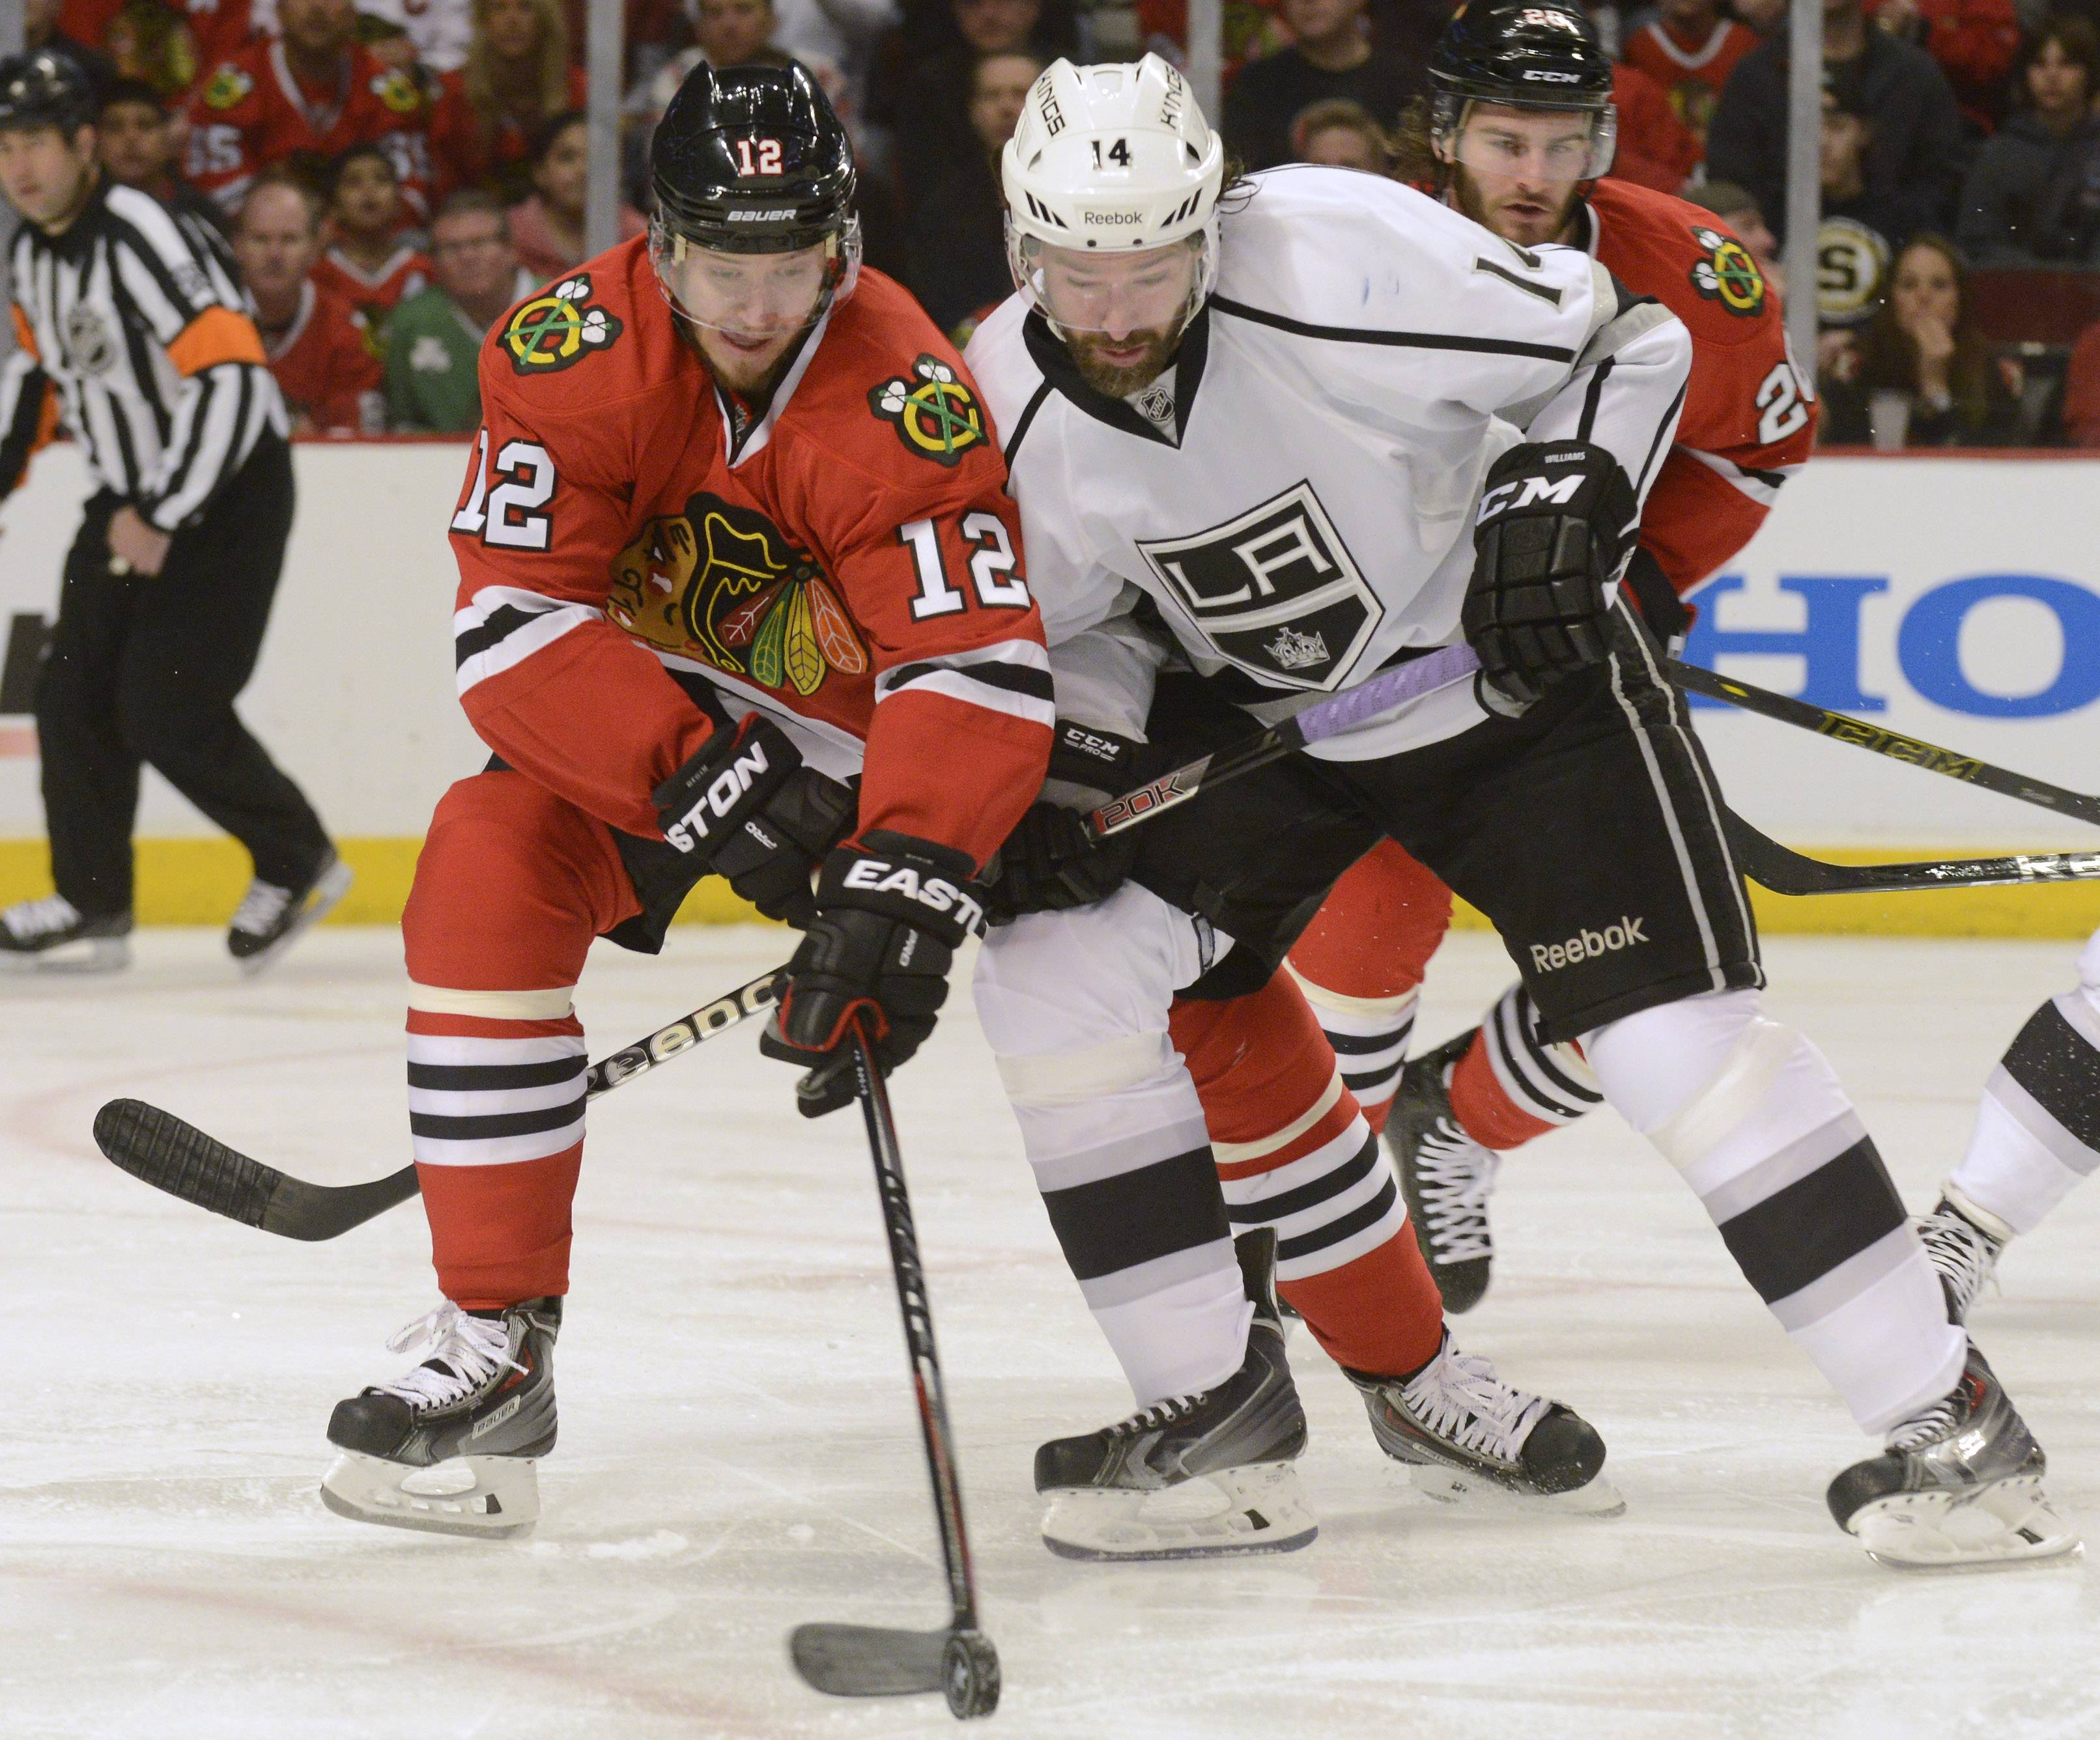 Chicago Blackhawks center Peter Regin, left, tries to take the puck from Los Angeles Kings right wing Justin Williams during Sunday's game at the United Center in Chicago.